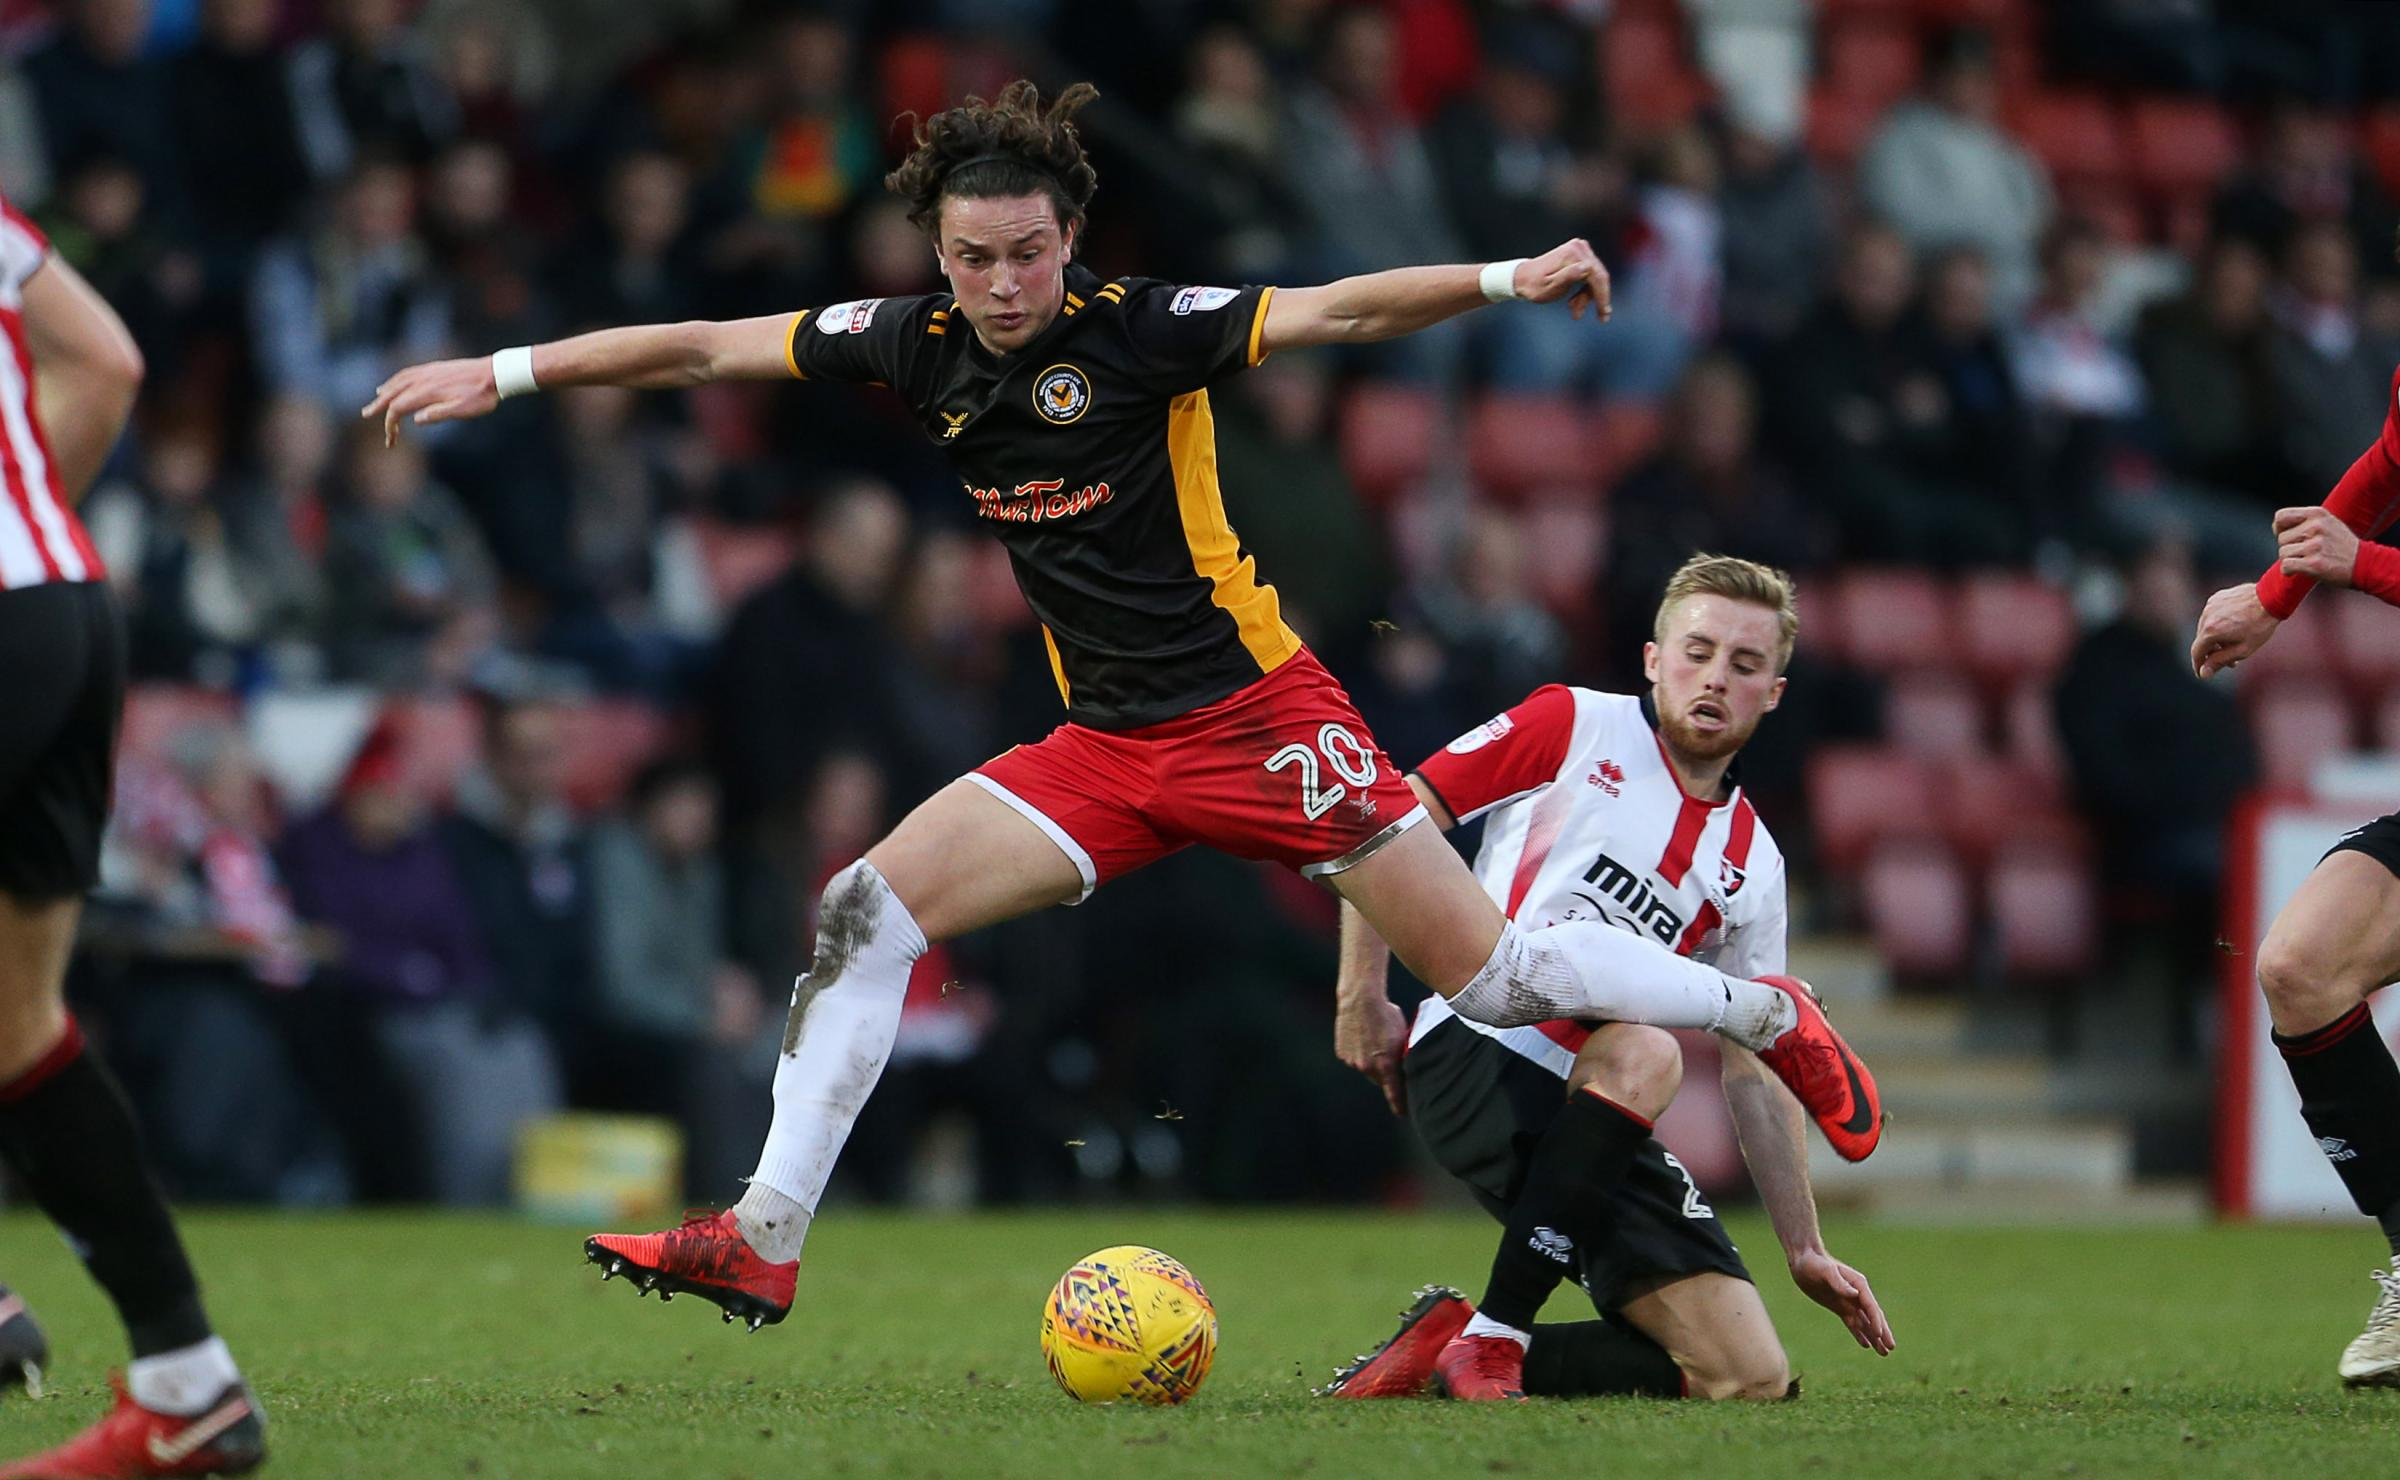 GONE: Academy graduate Tom Owen-Evans in action for Newport County at Cheltenham Town last season